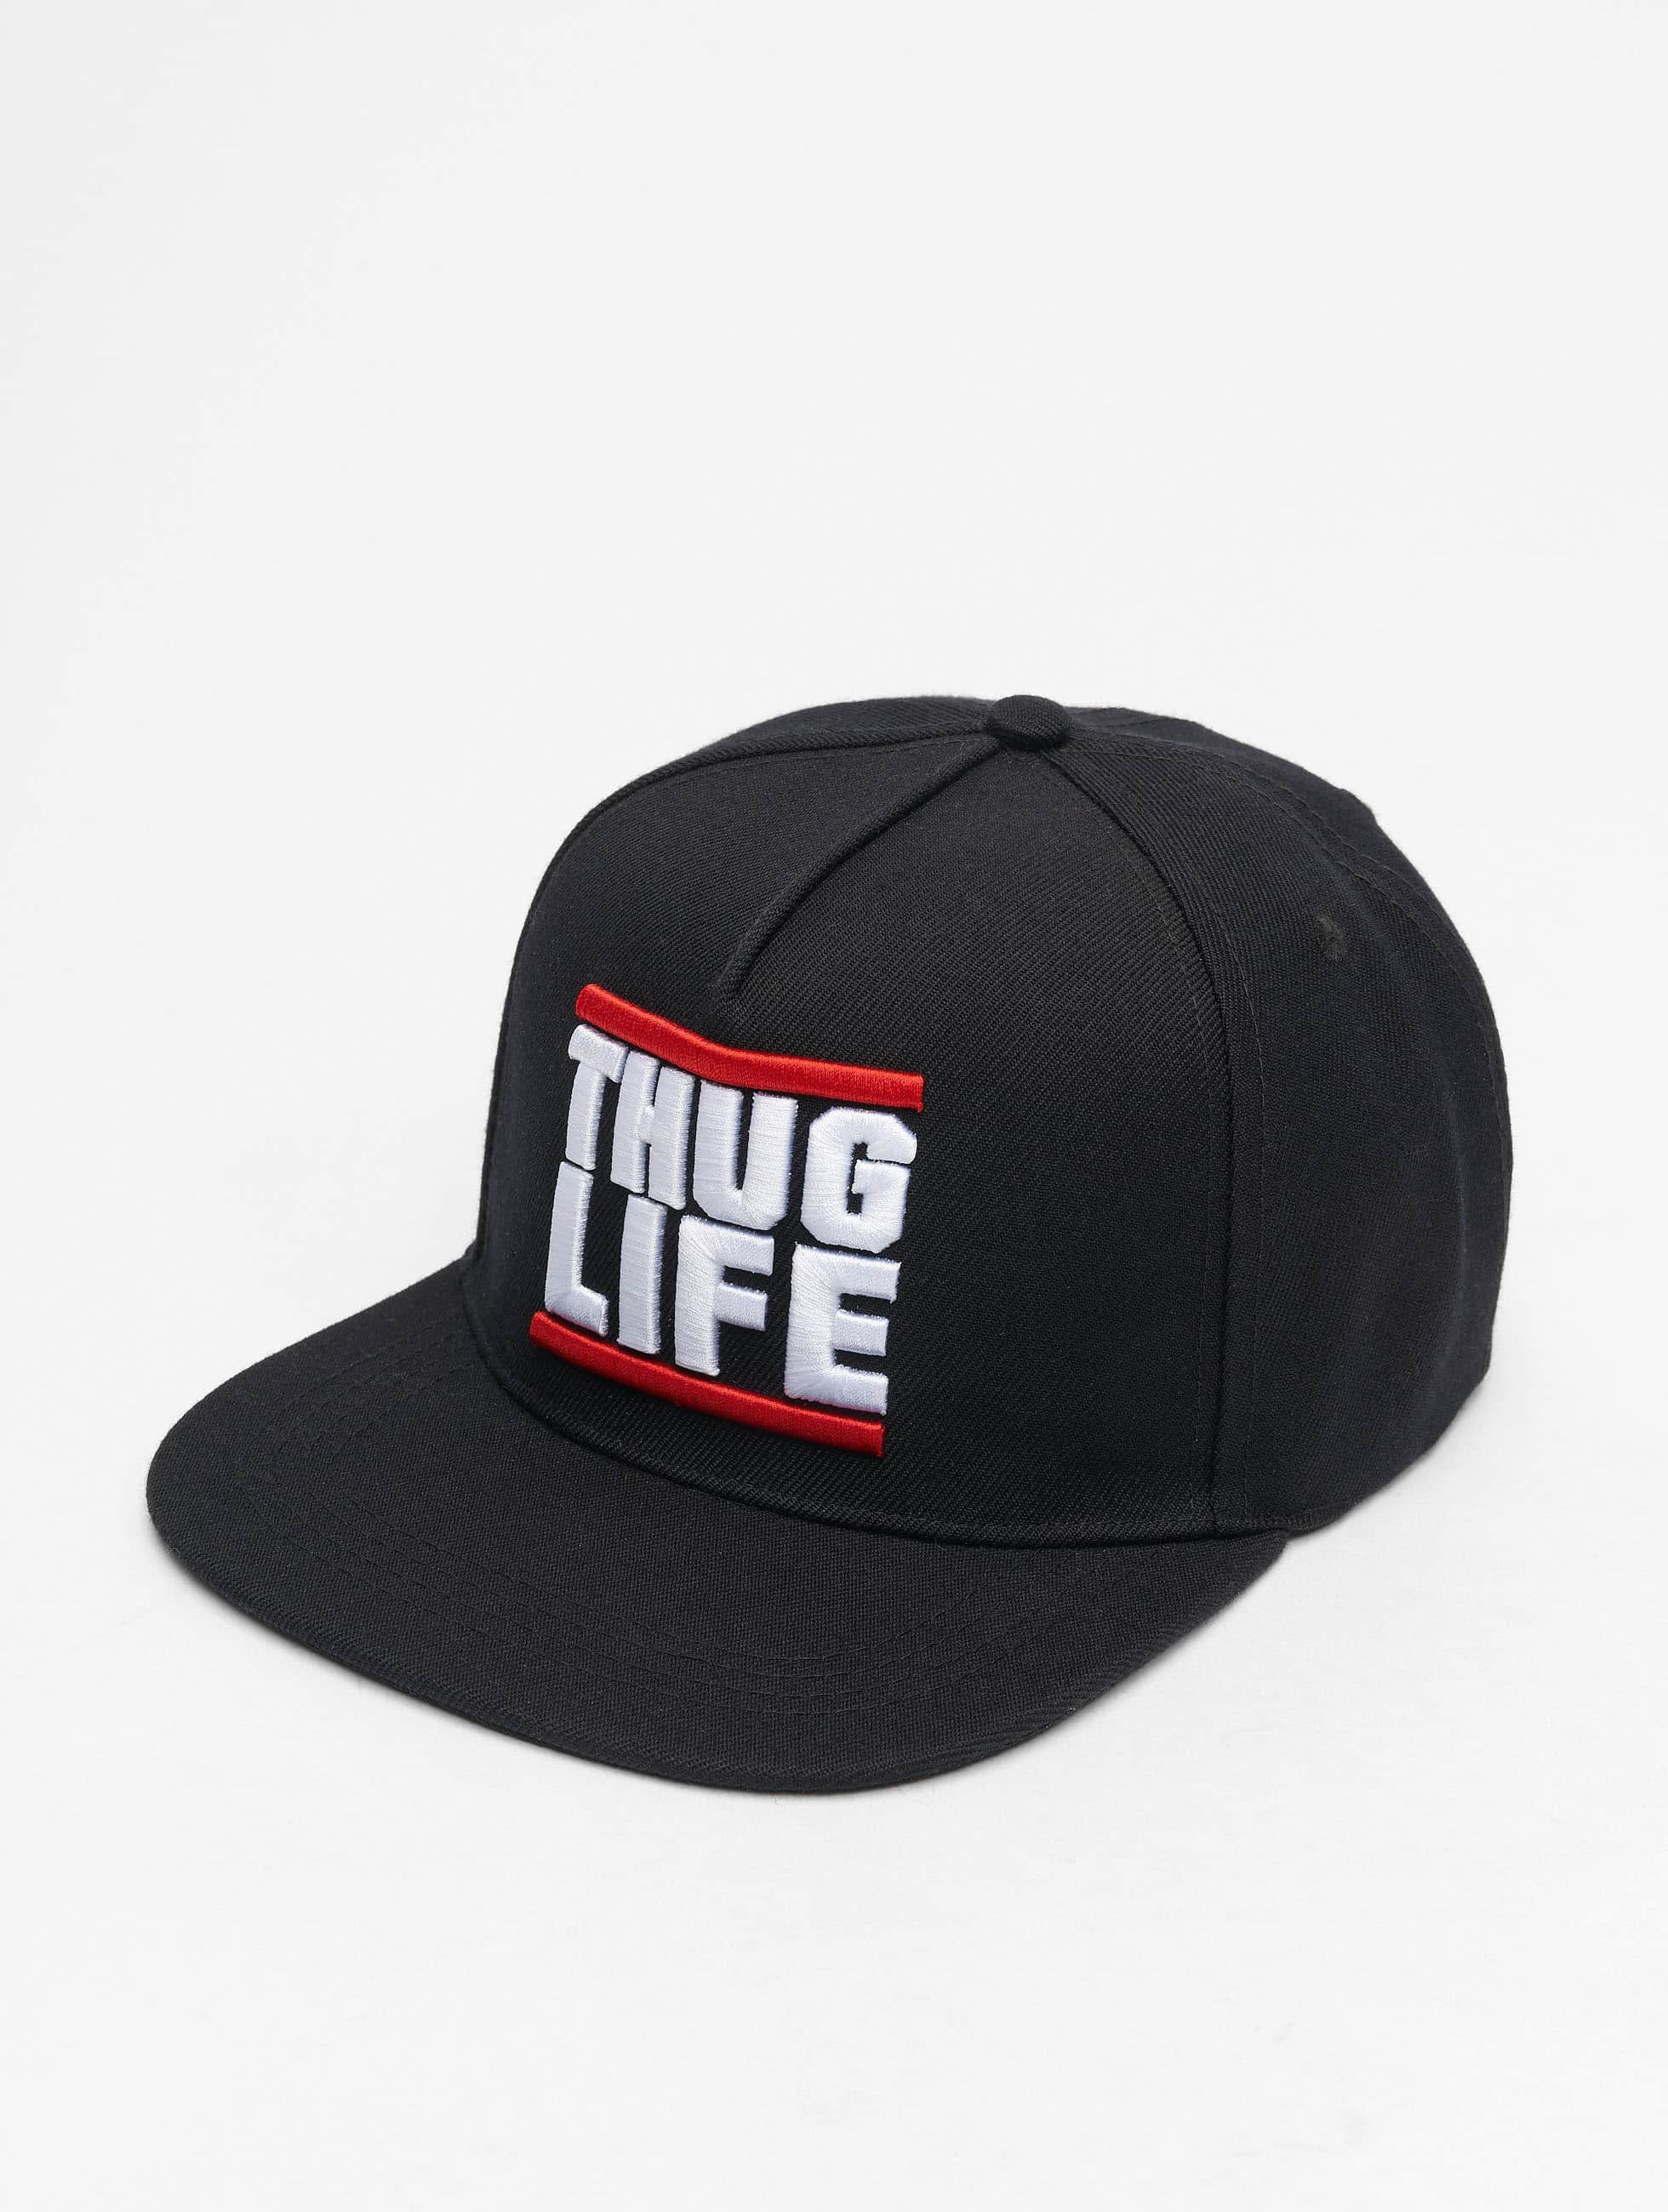 Thug Life / Snapback Cap Creutz in black Adjustable